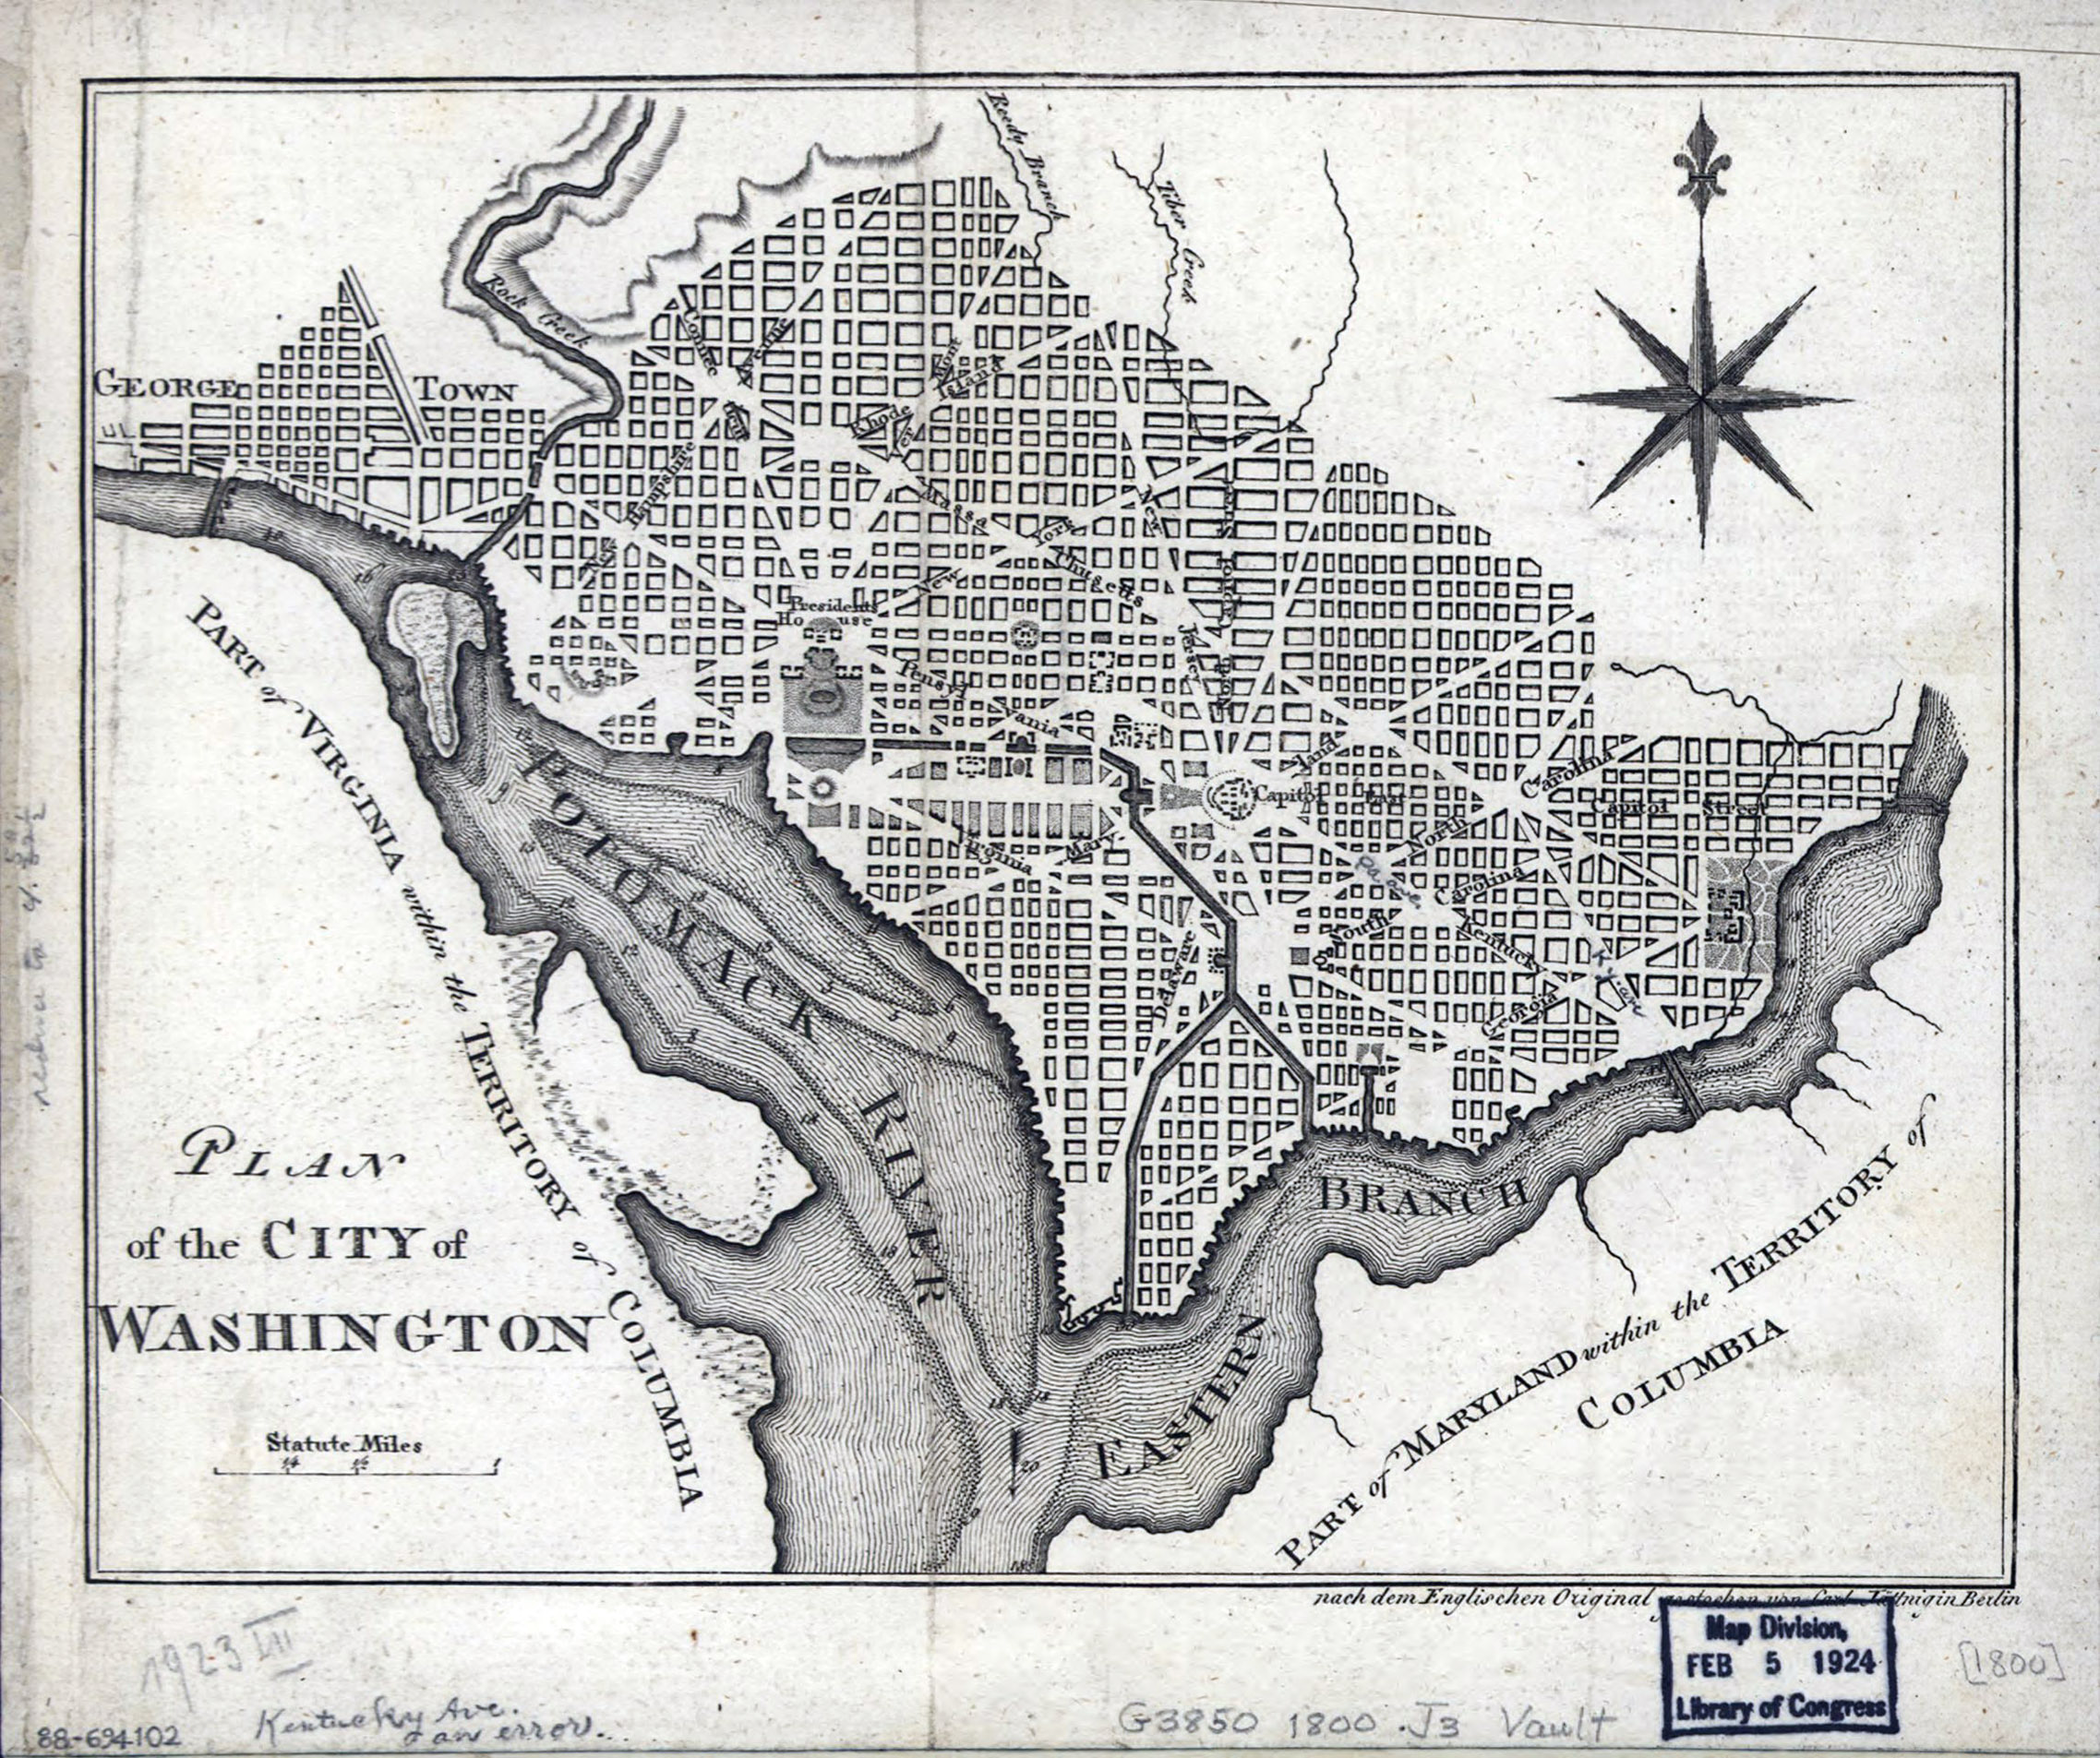 Map Of America In 1800.Large Detailed Old Plan Of The City Of Washington 1800